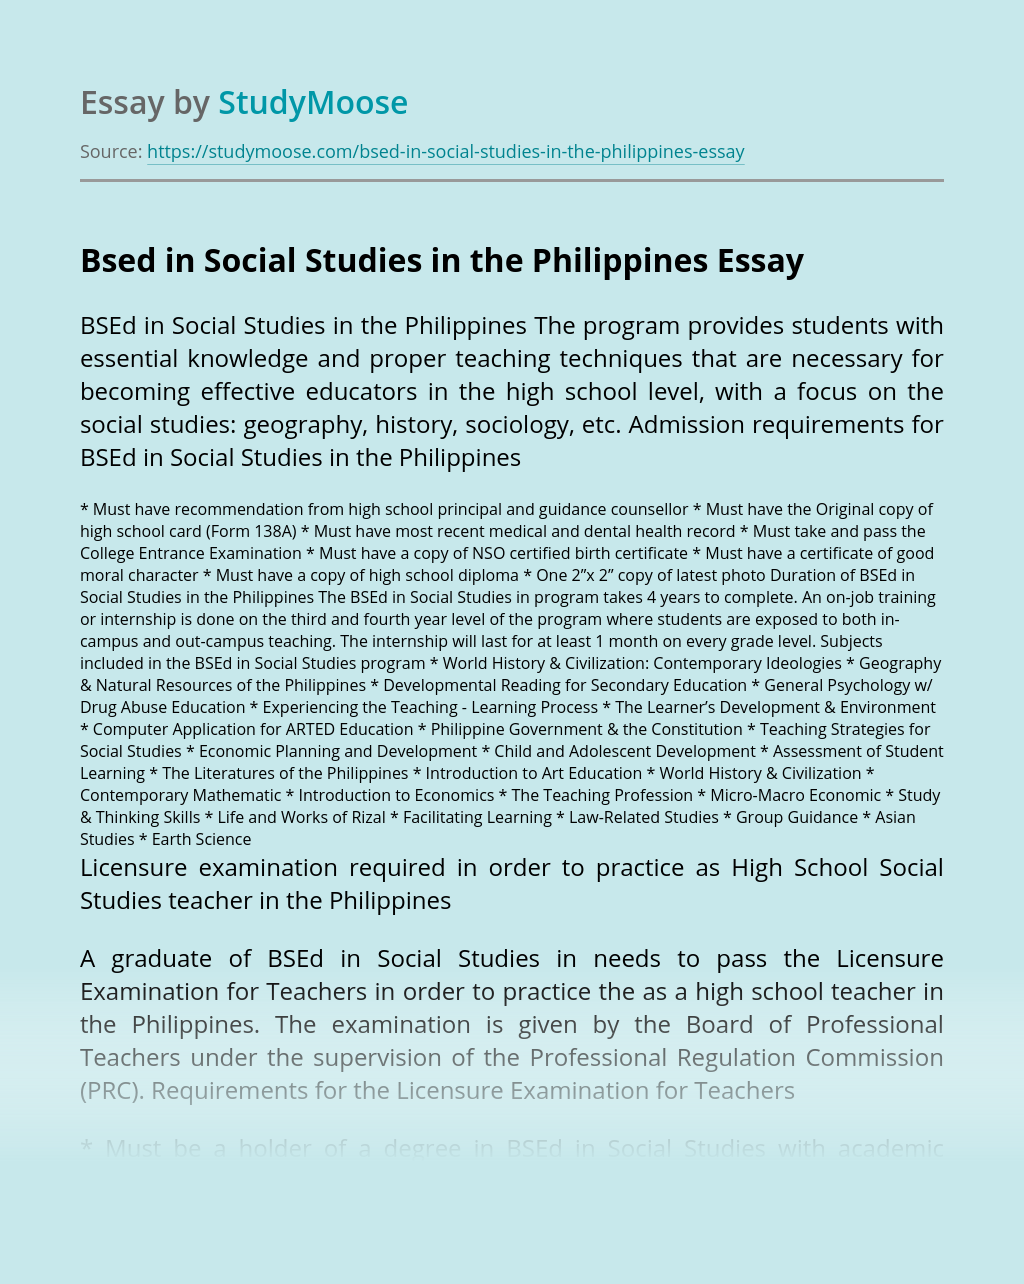 Bsed in Social Studies in the Philippines